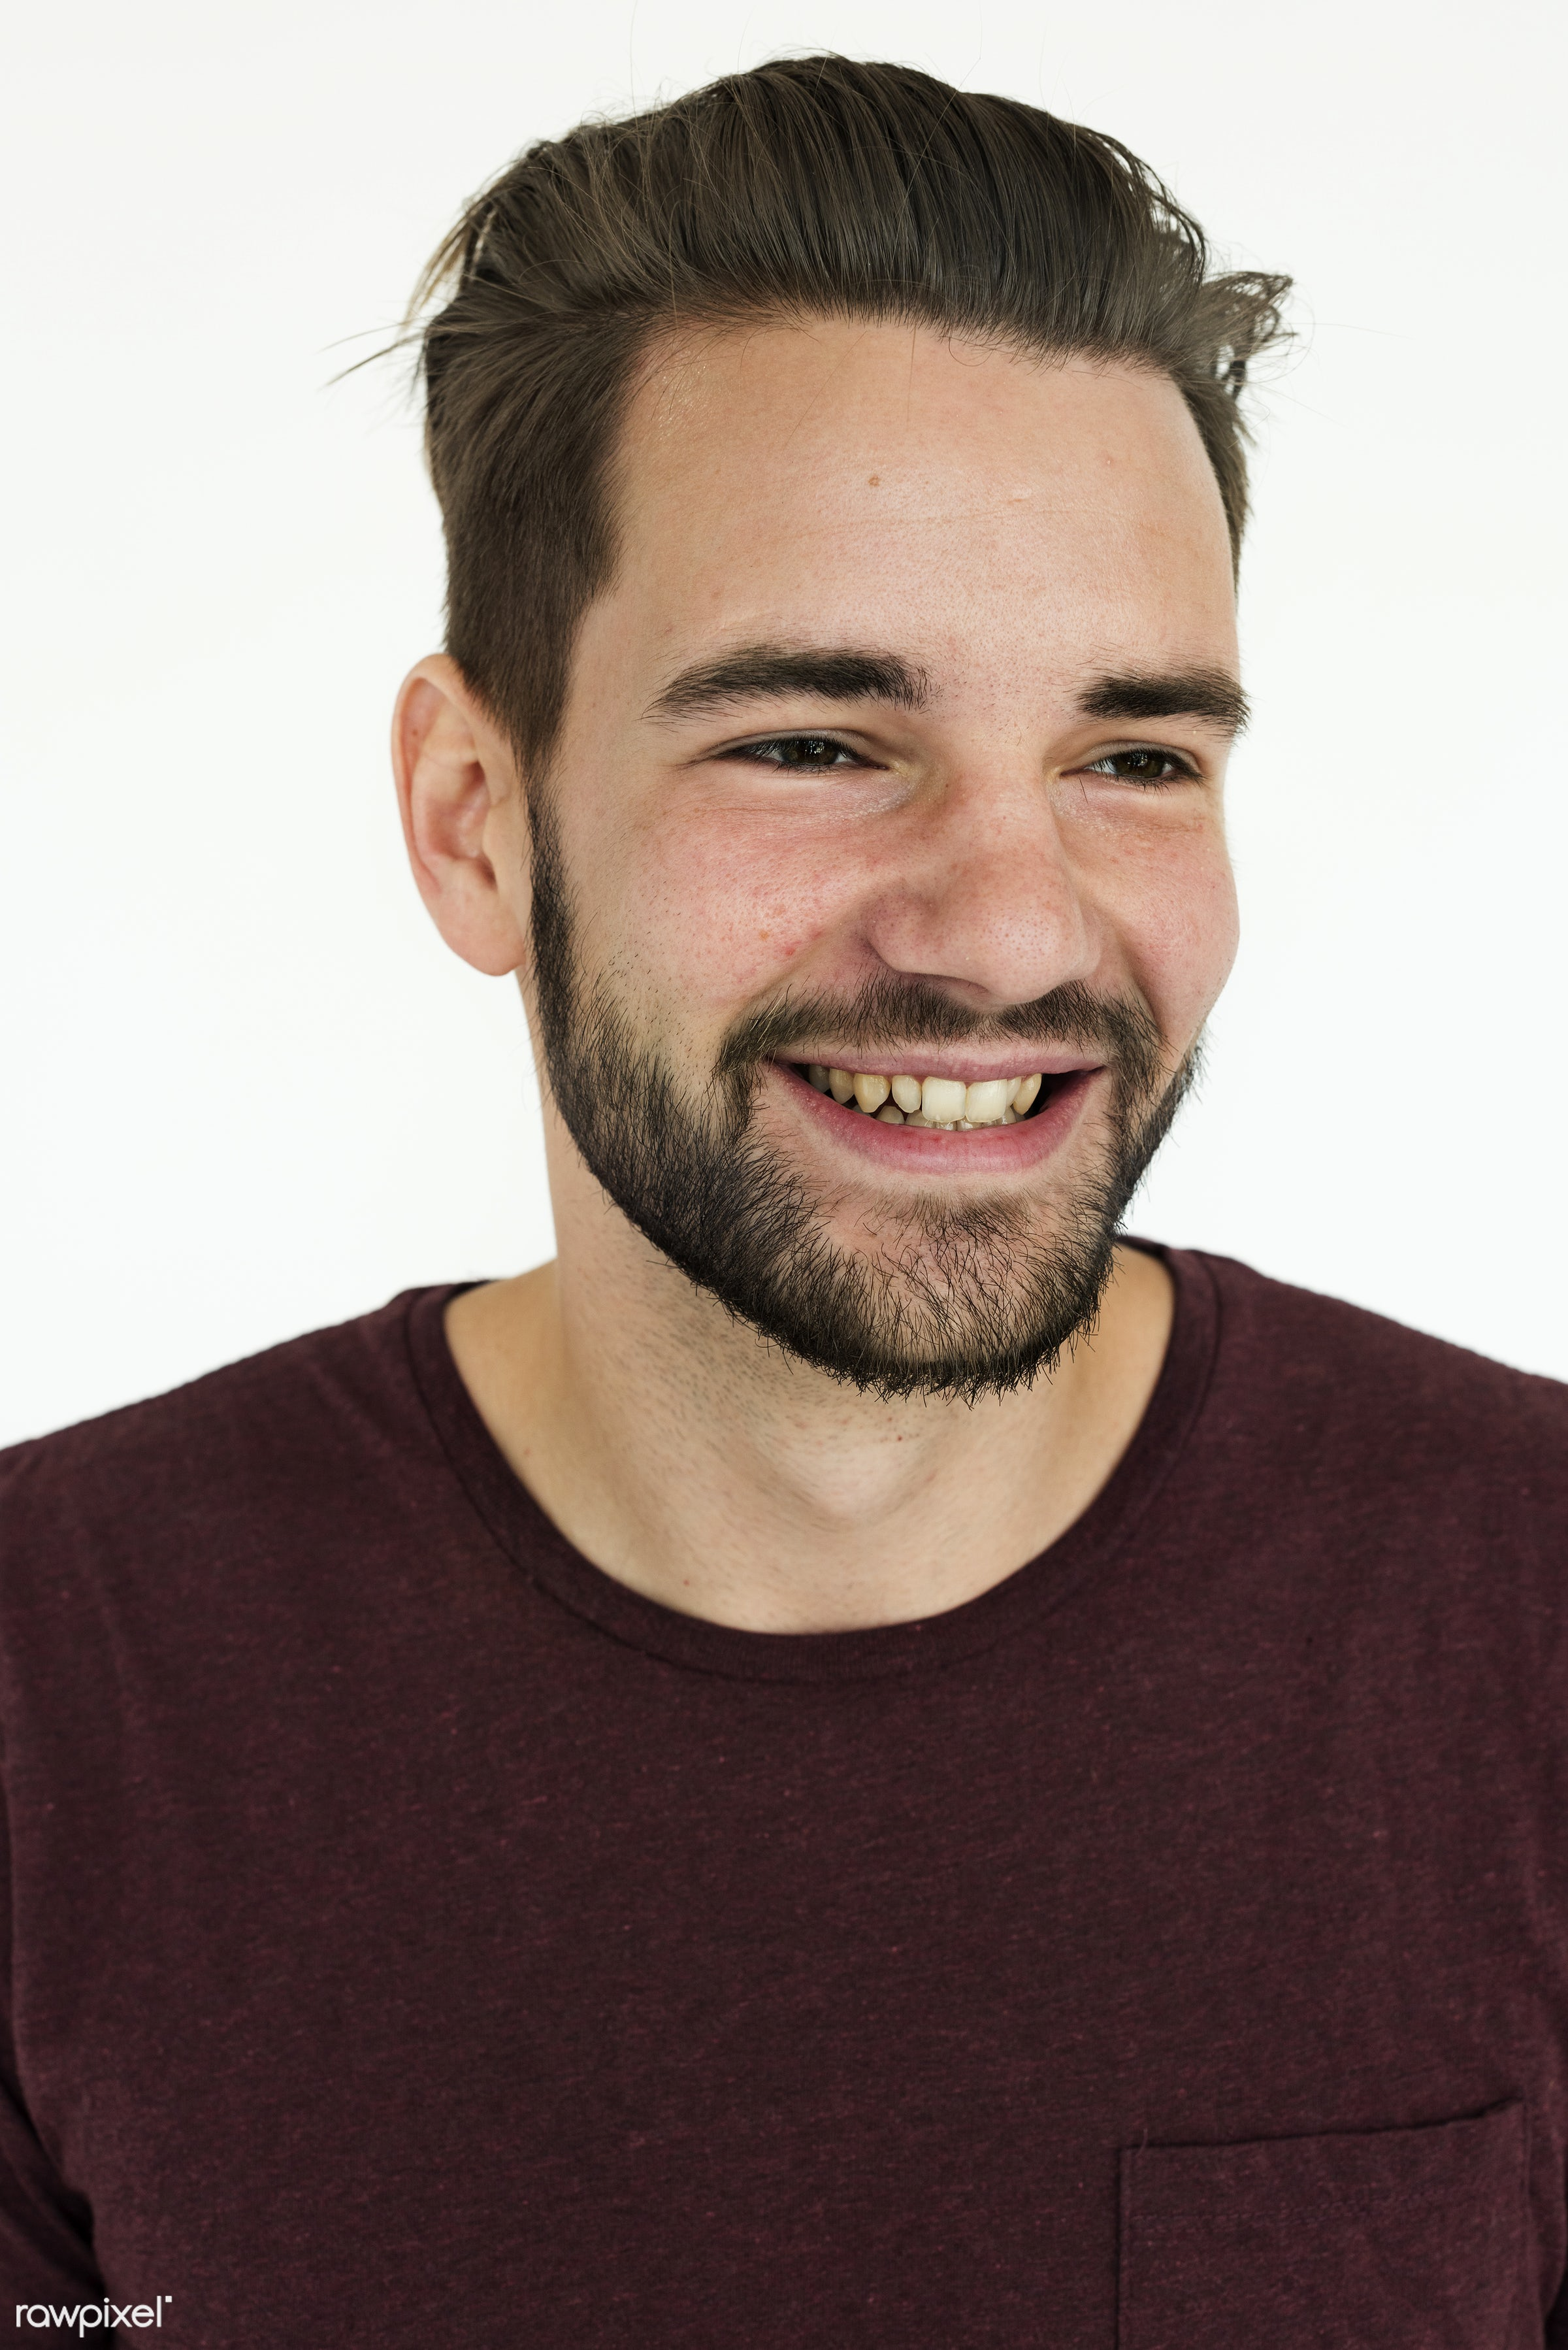 studio, expression, person, shot, people, positivity, caucasian, stubble, young adult, smile, cheerful, smiling, cool,...